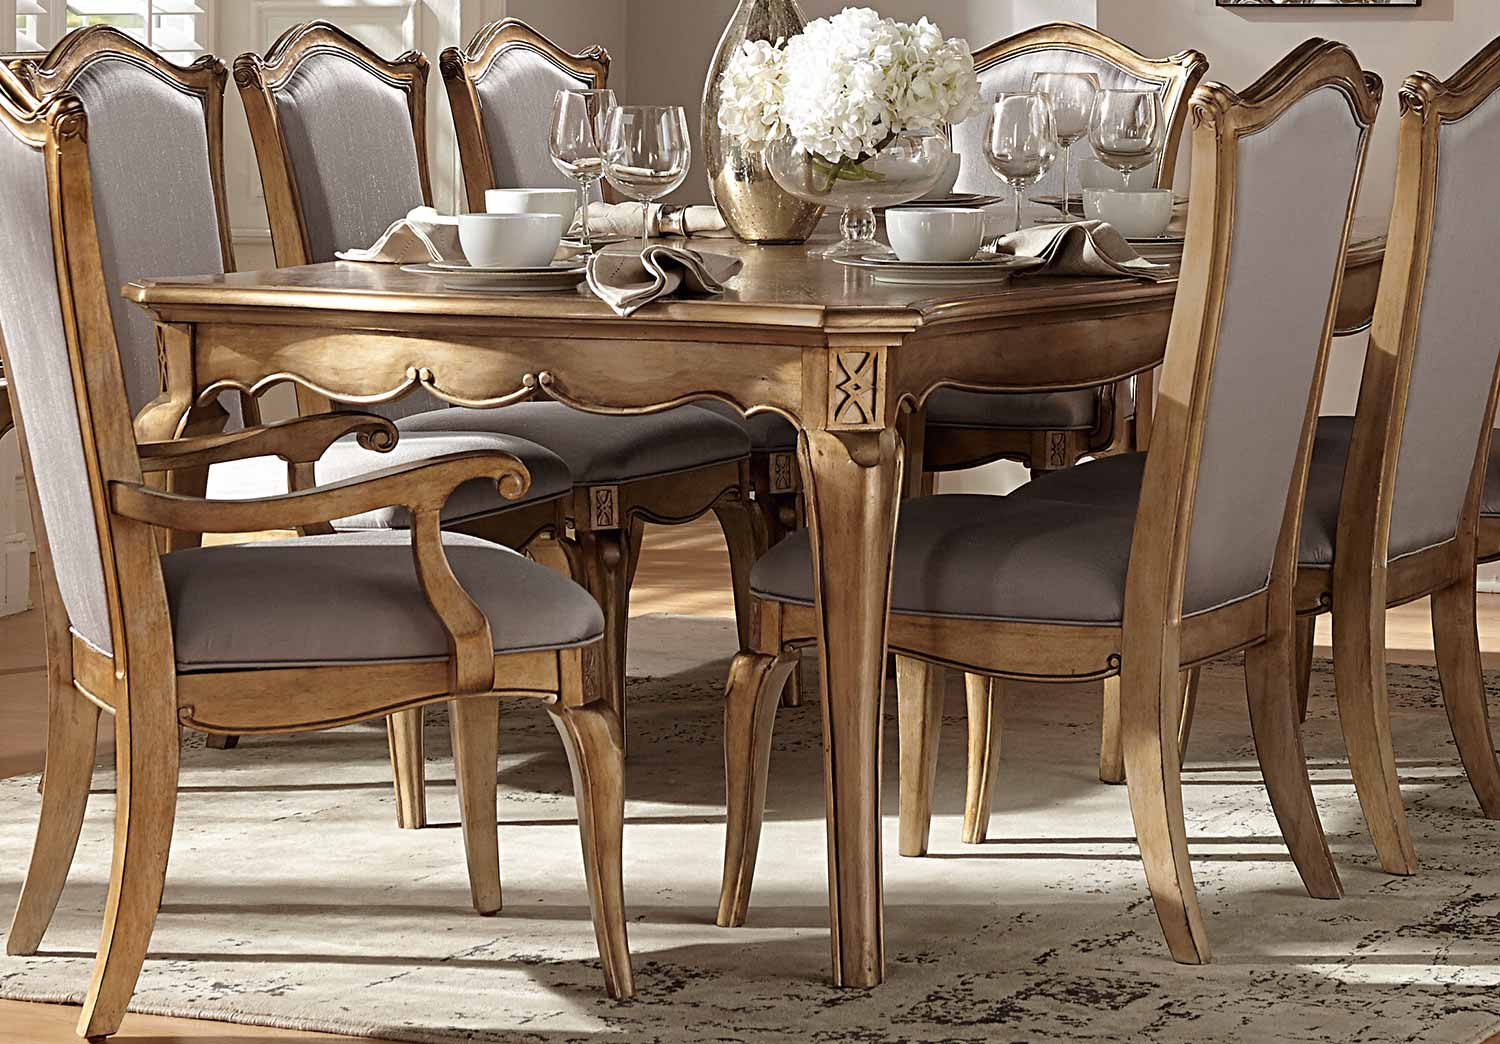 Gold Dining Tables ~ Homelegance chambord dining set antique gold